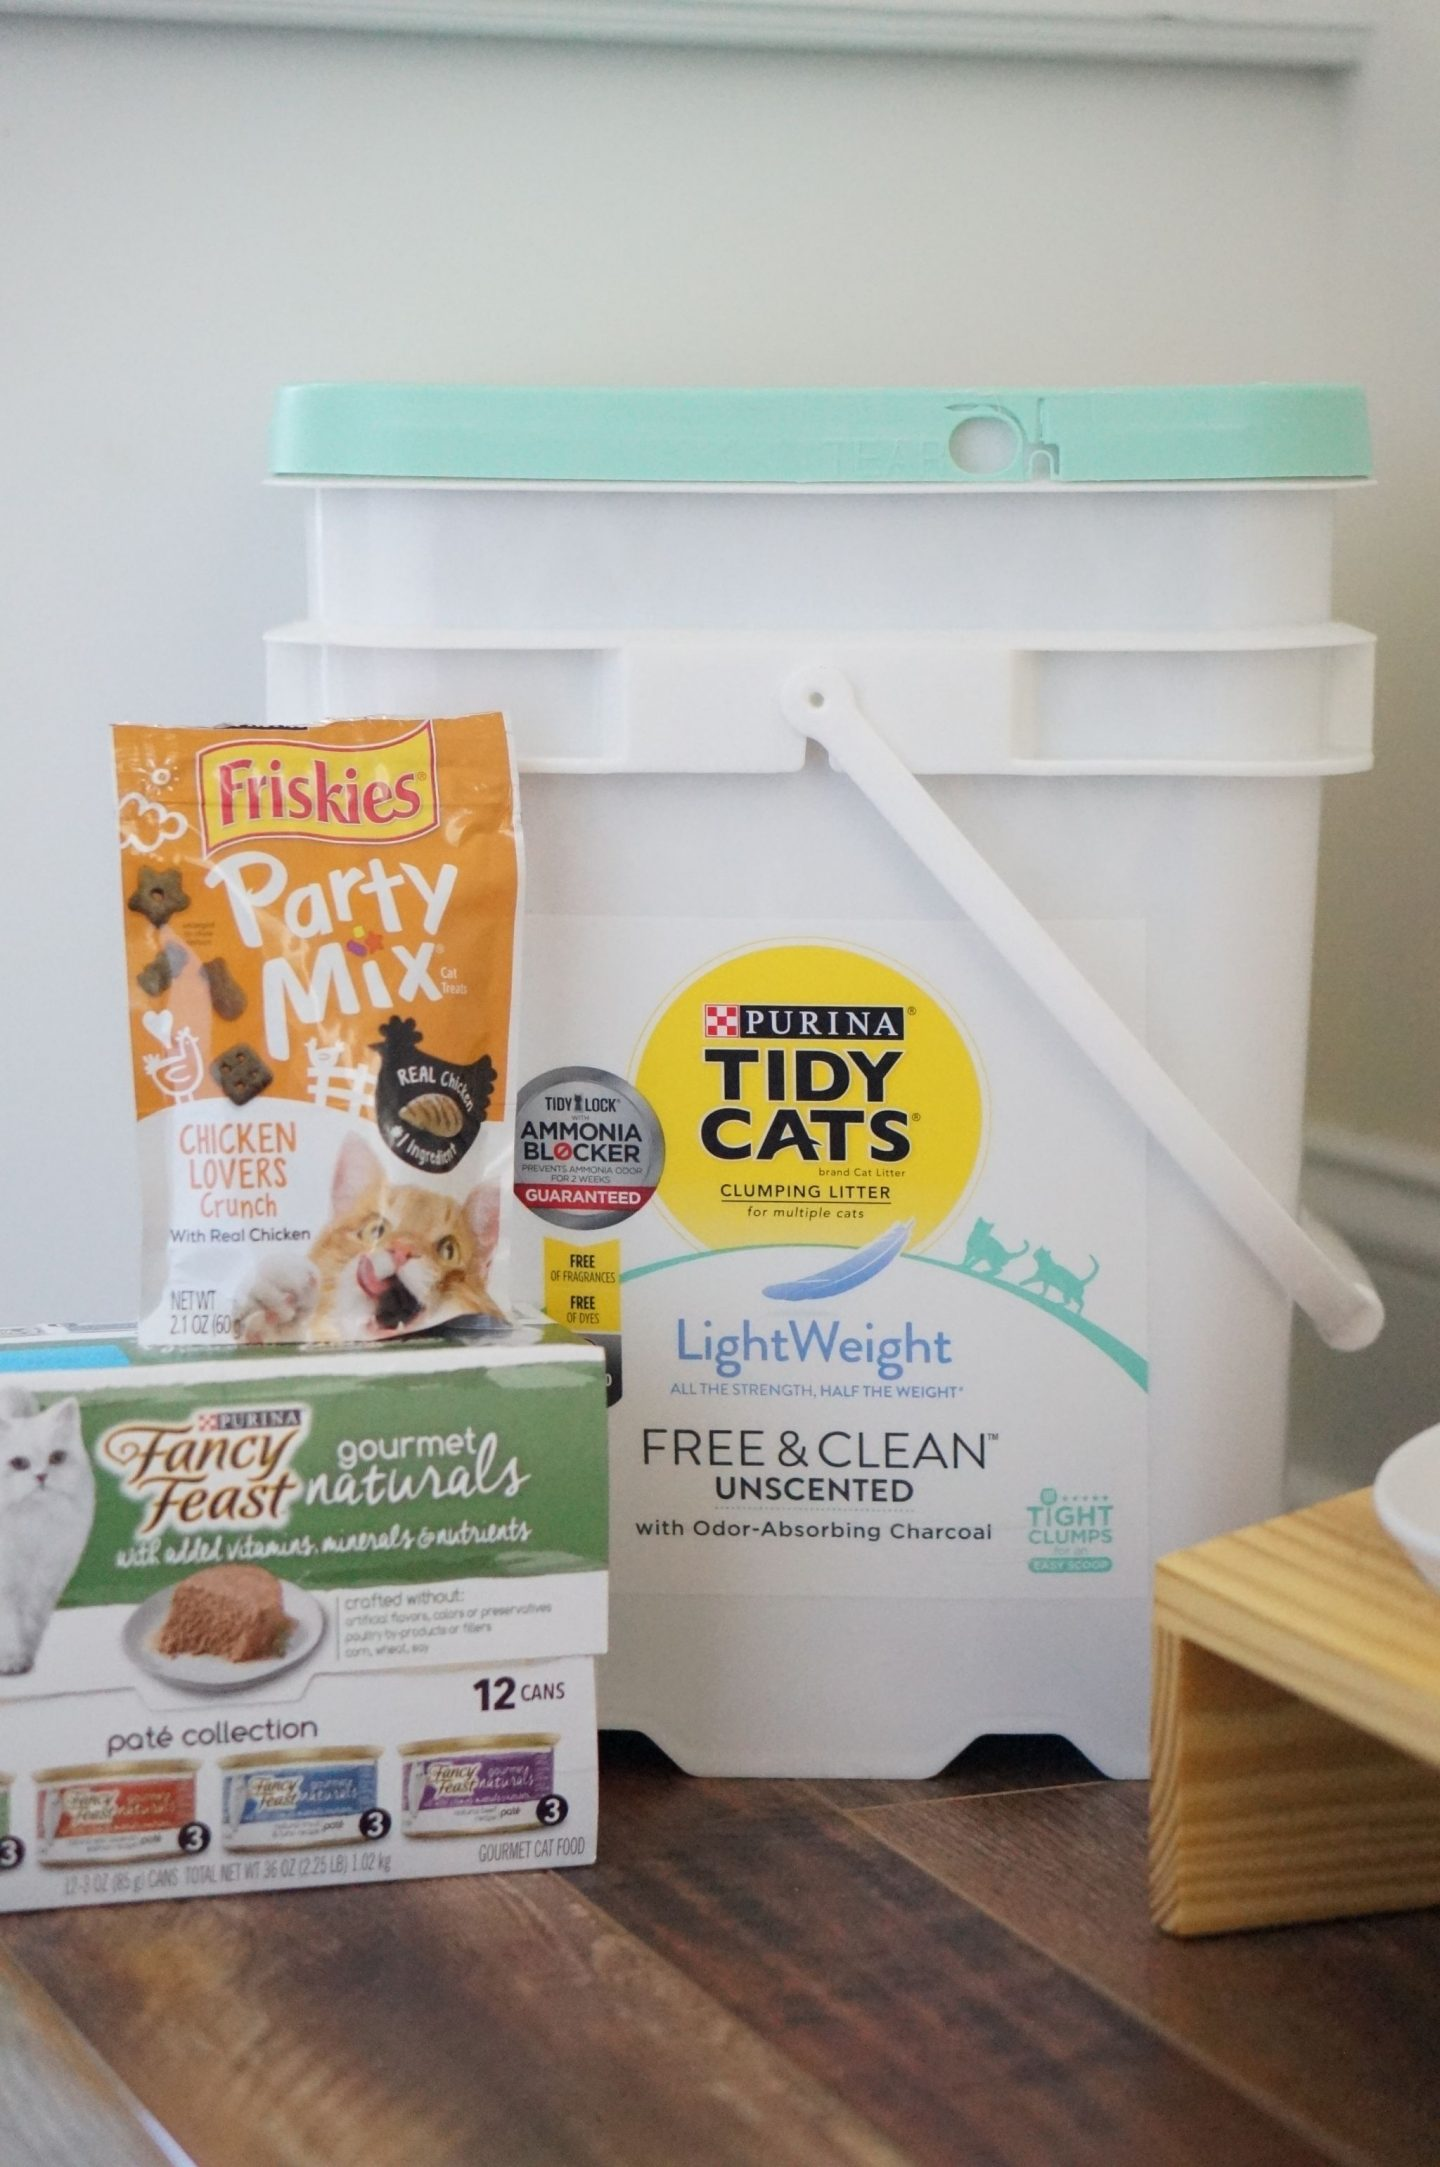 North Carolina blogger Rebecca Lately shares the Purina® Friskies® treats that her kitty Zoe loves. Find out how you can also treat your cats!